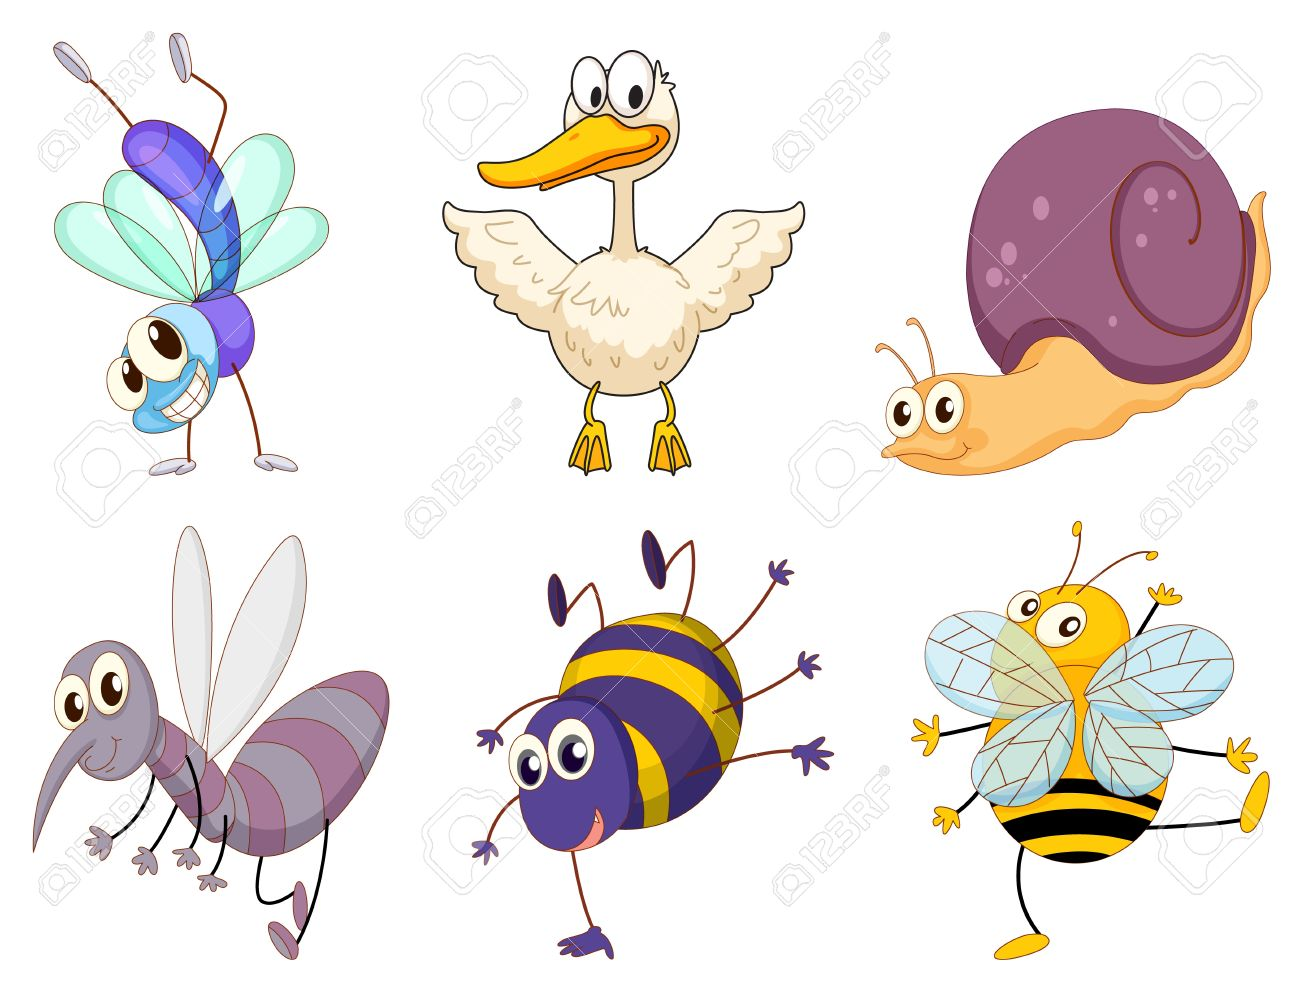 illustration of a set of cute animals royalty free cliparts